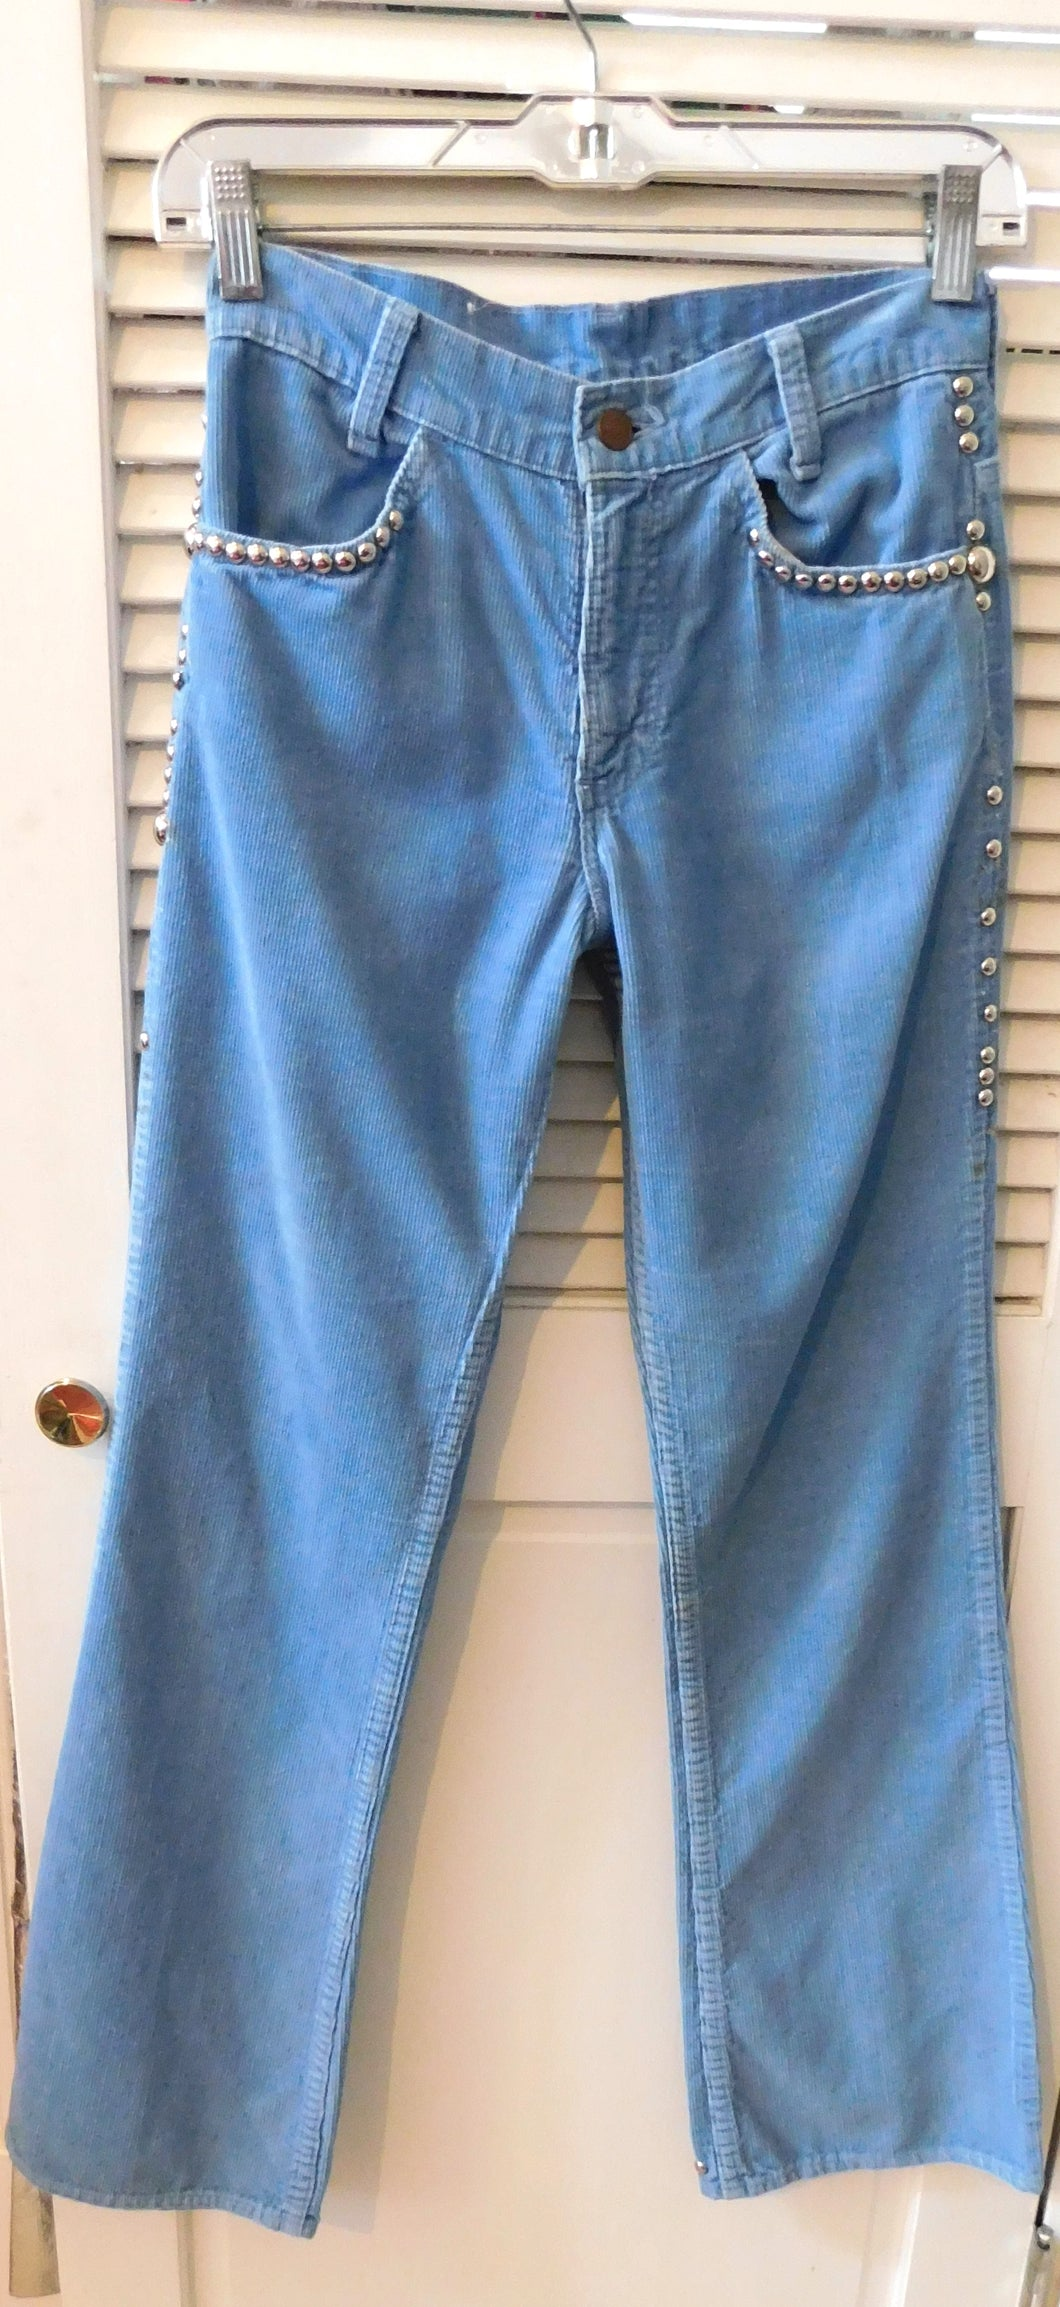 Vintage 1970s distressed and studded Levis Corduroy bells from the estate of Tanya Tucker